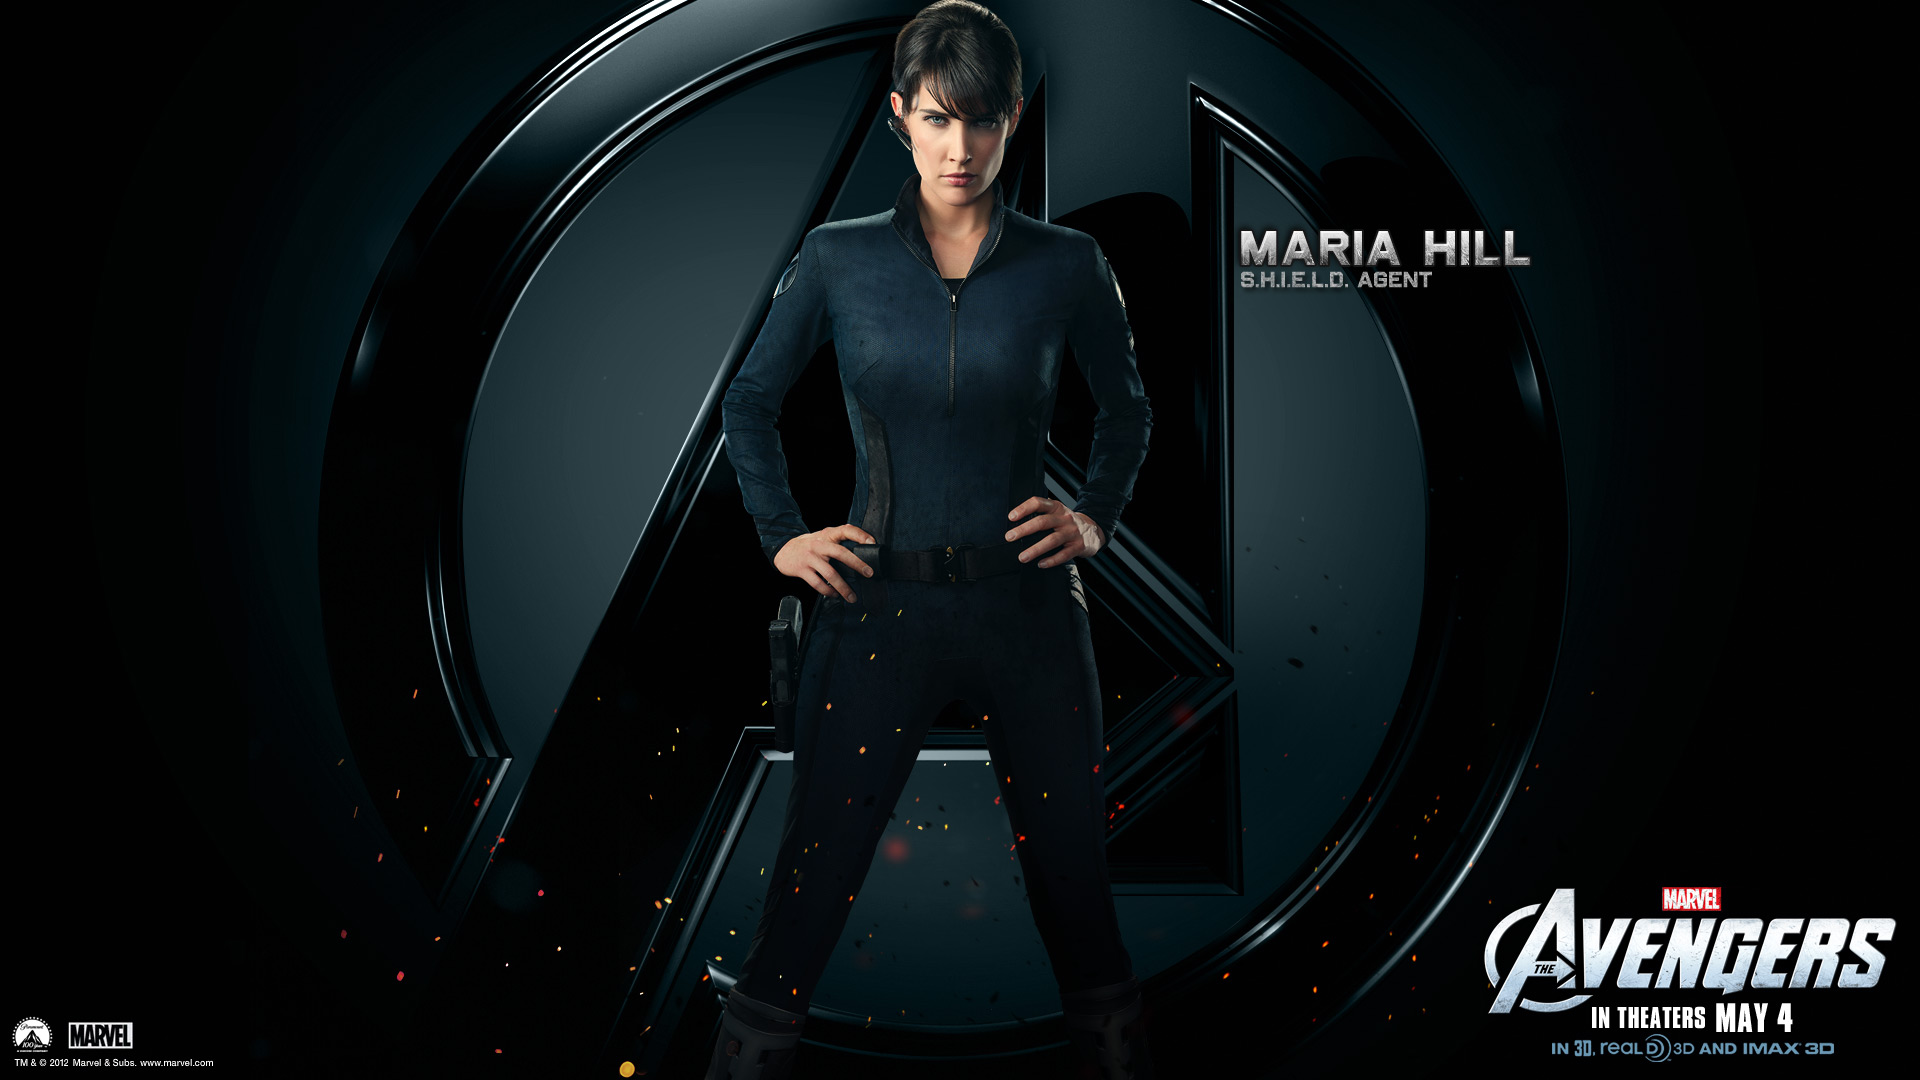 Cobie_Smulders_in_The_Avengers_Wallpaper_20